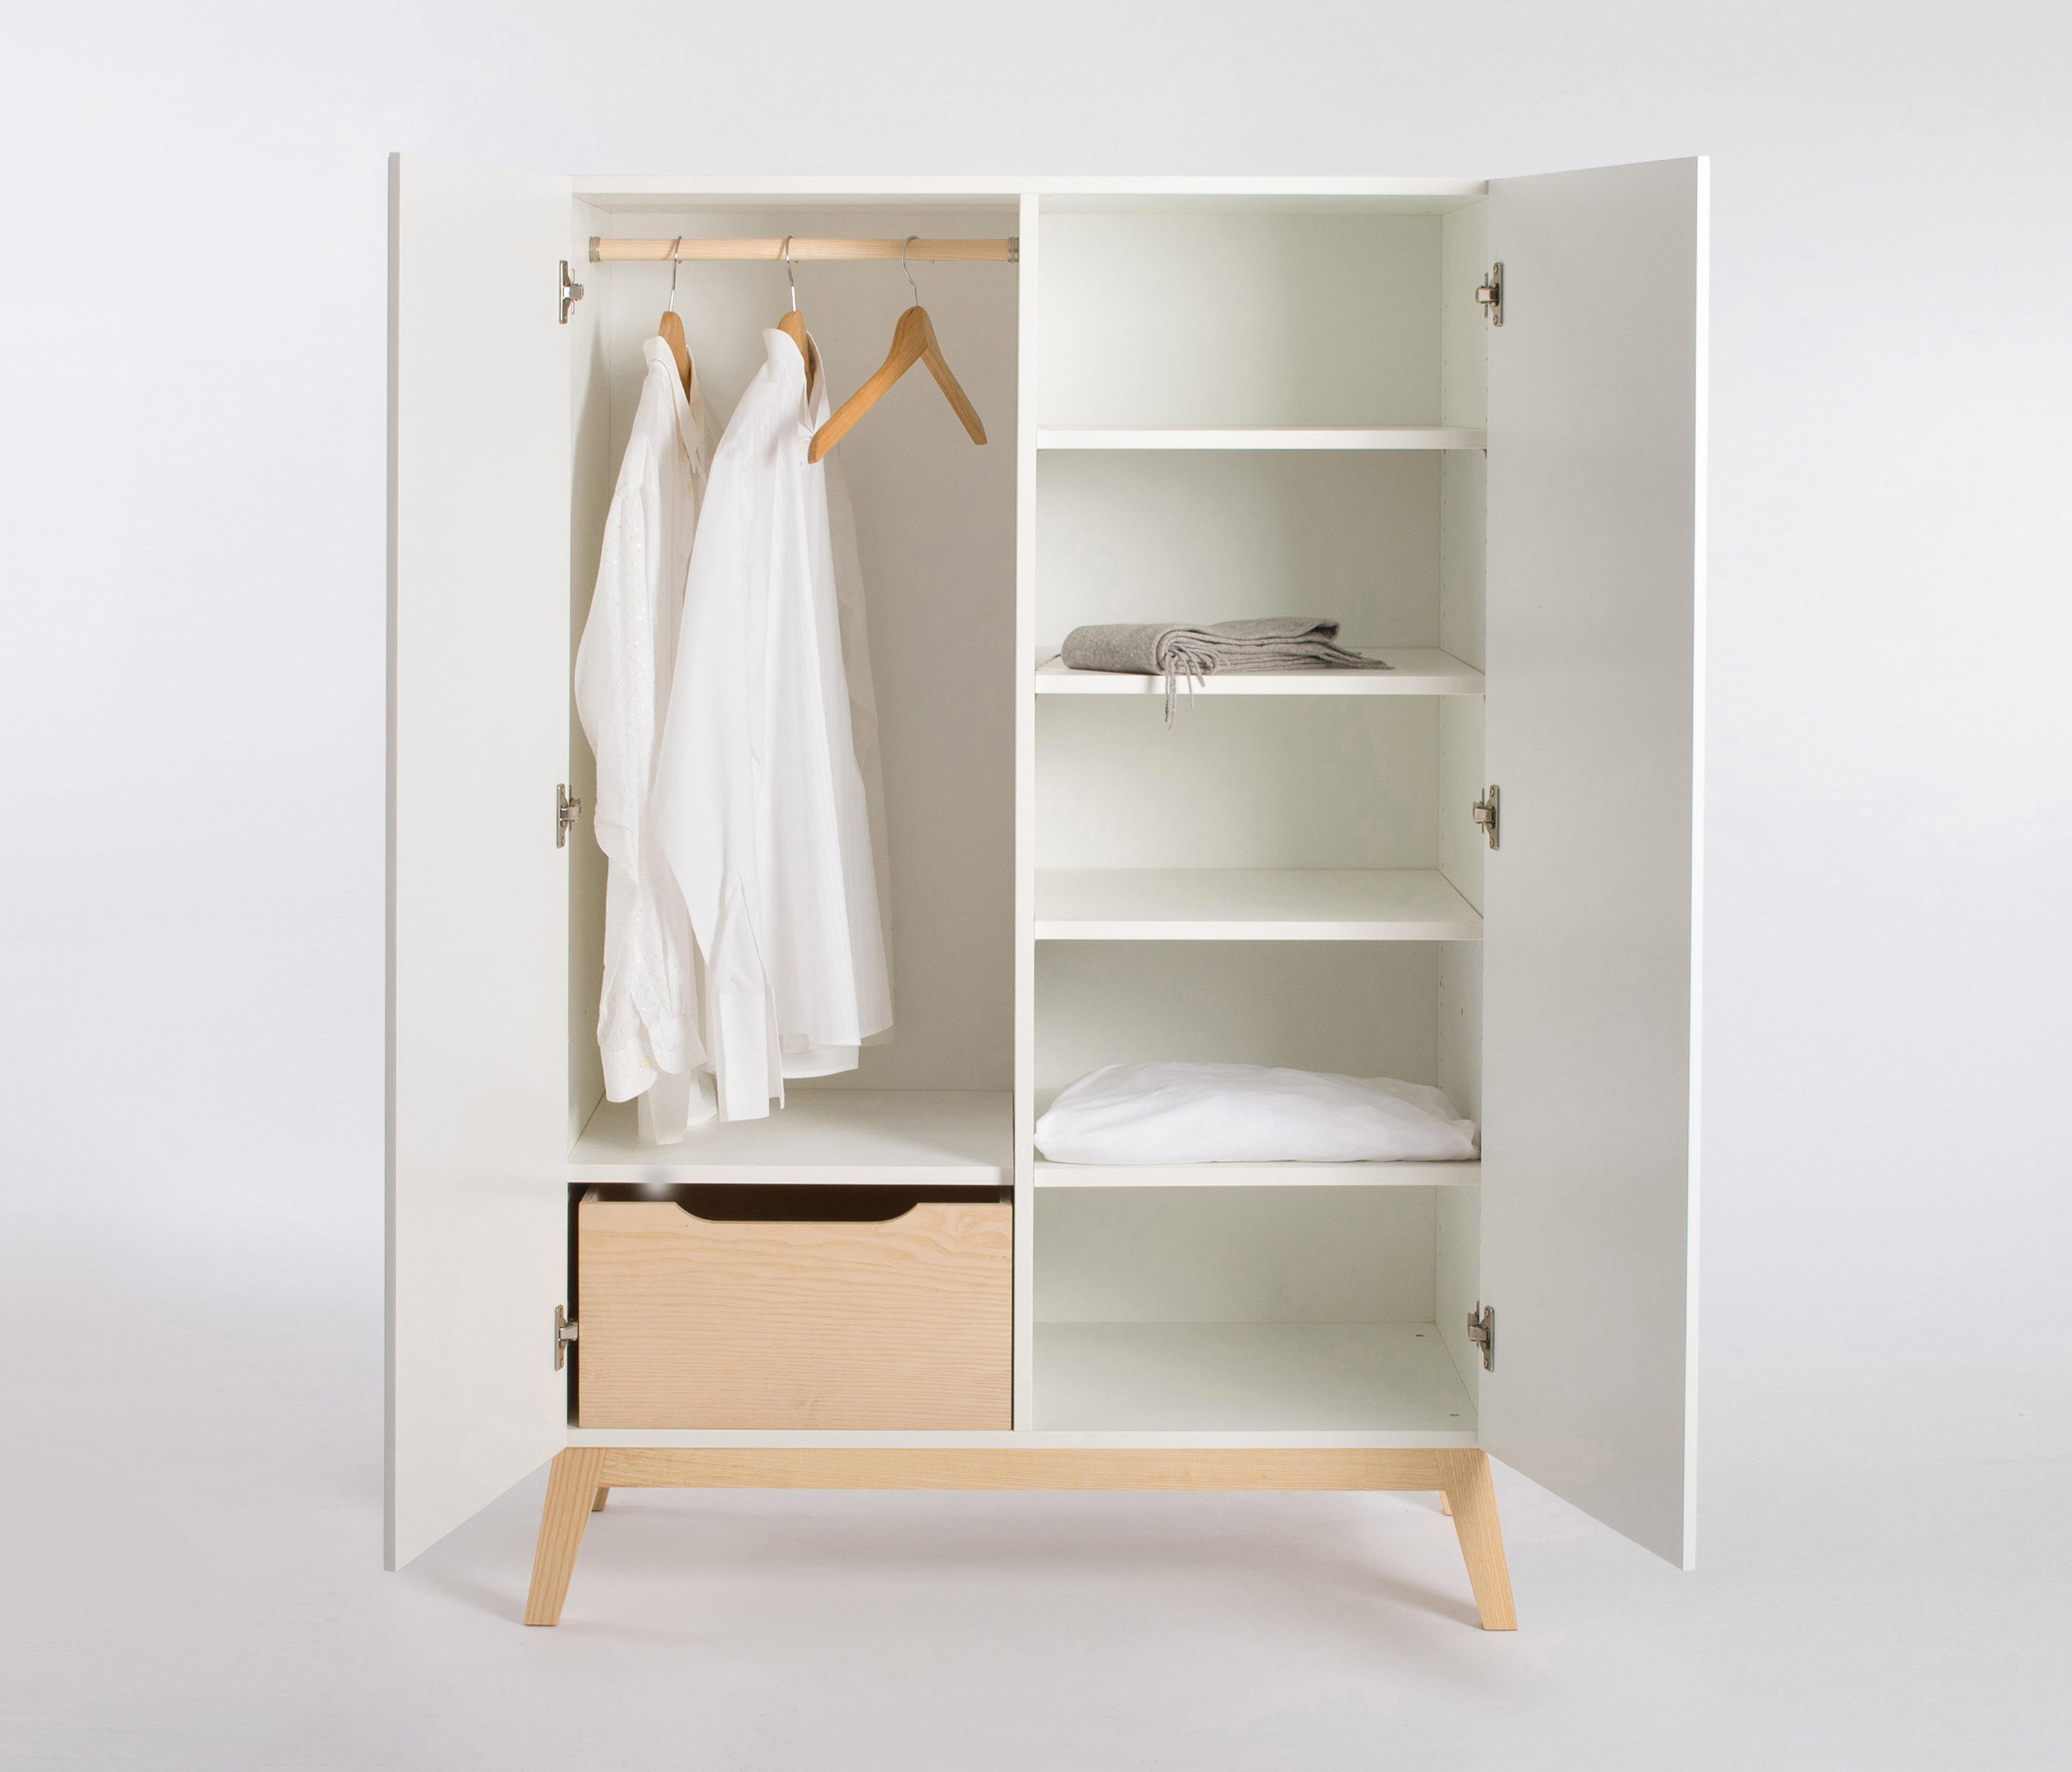 Garderobenschrank Design Private Space Small Closet Cabinets From